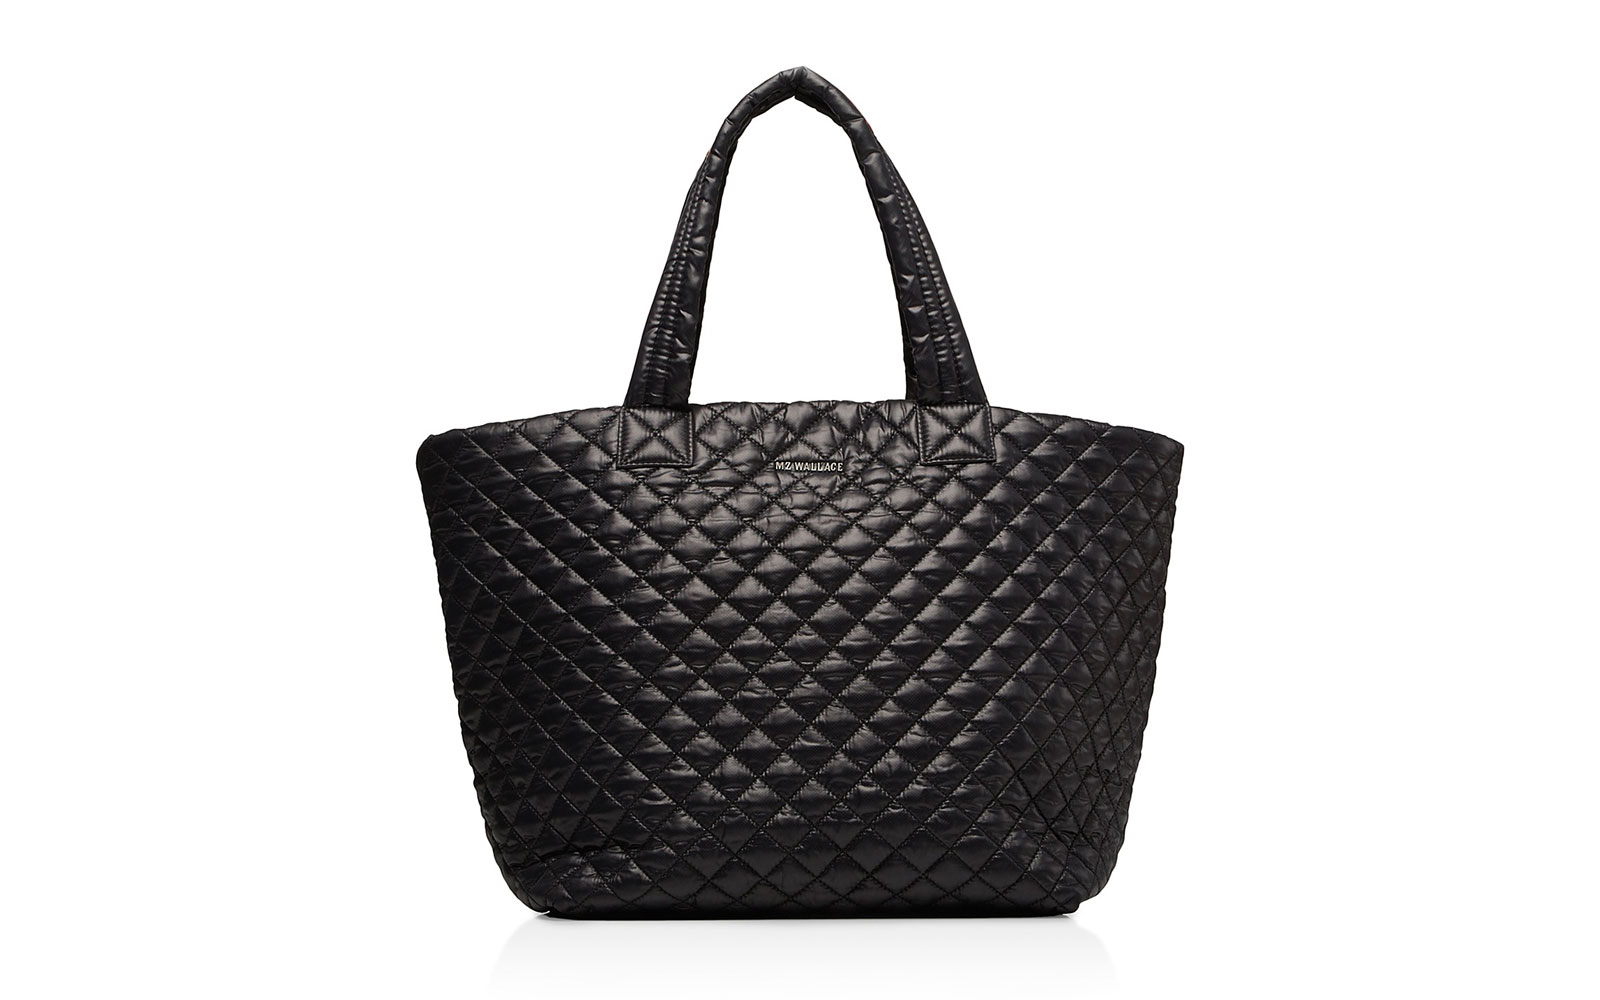 5e48e6d102cc0b Courtesy of Bloomingdales. Large tote bags for travel ...